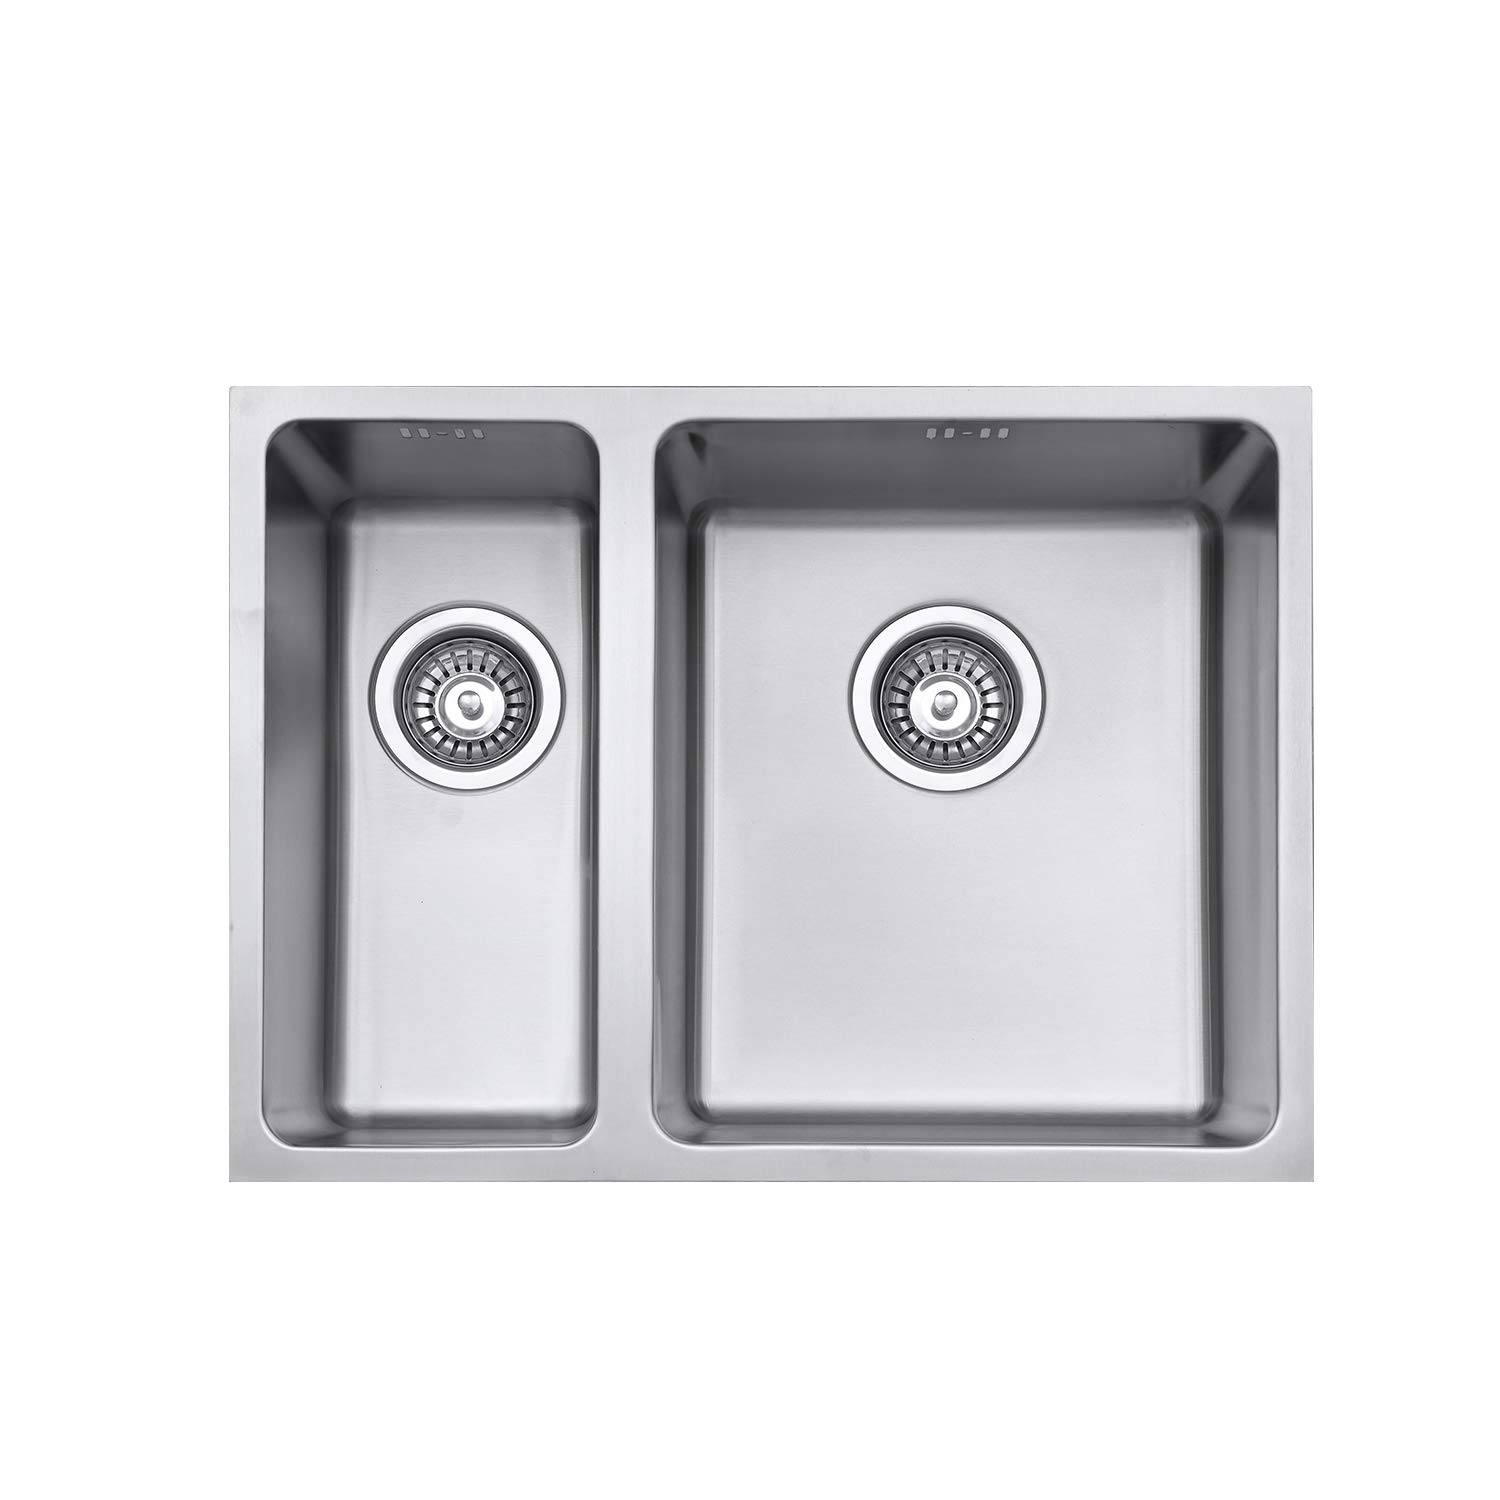 Jass Ferry Undermount Stainless Steel Kitchen Sink 1 5 One Half Square Bowls Left Hand Smaller Bowl 590 X 440 Mm Buy Online In India At Desertcart In Productid 162071990